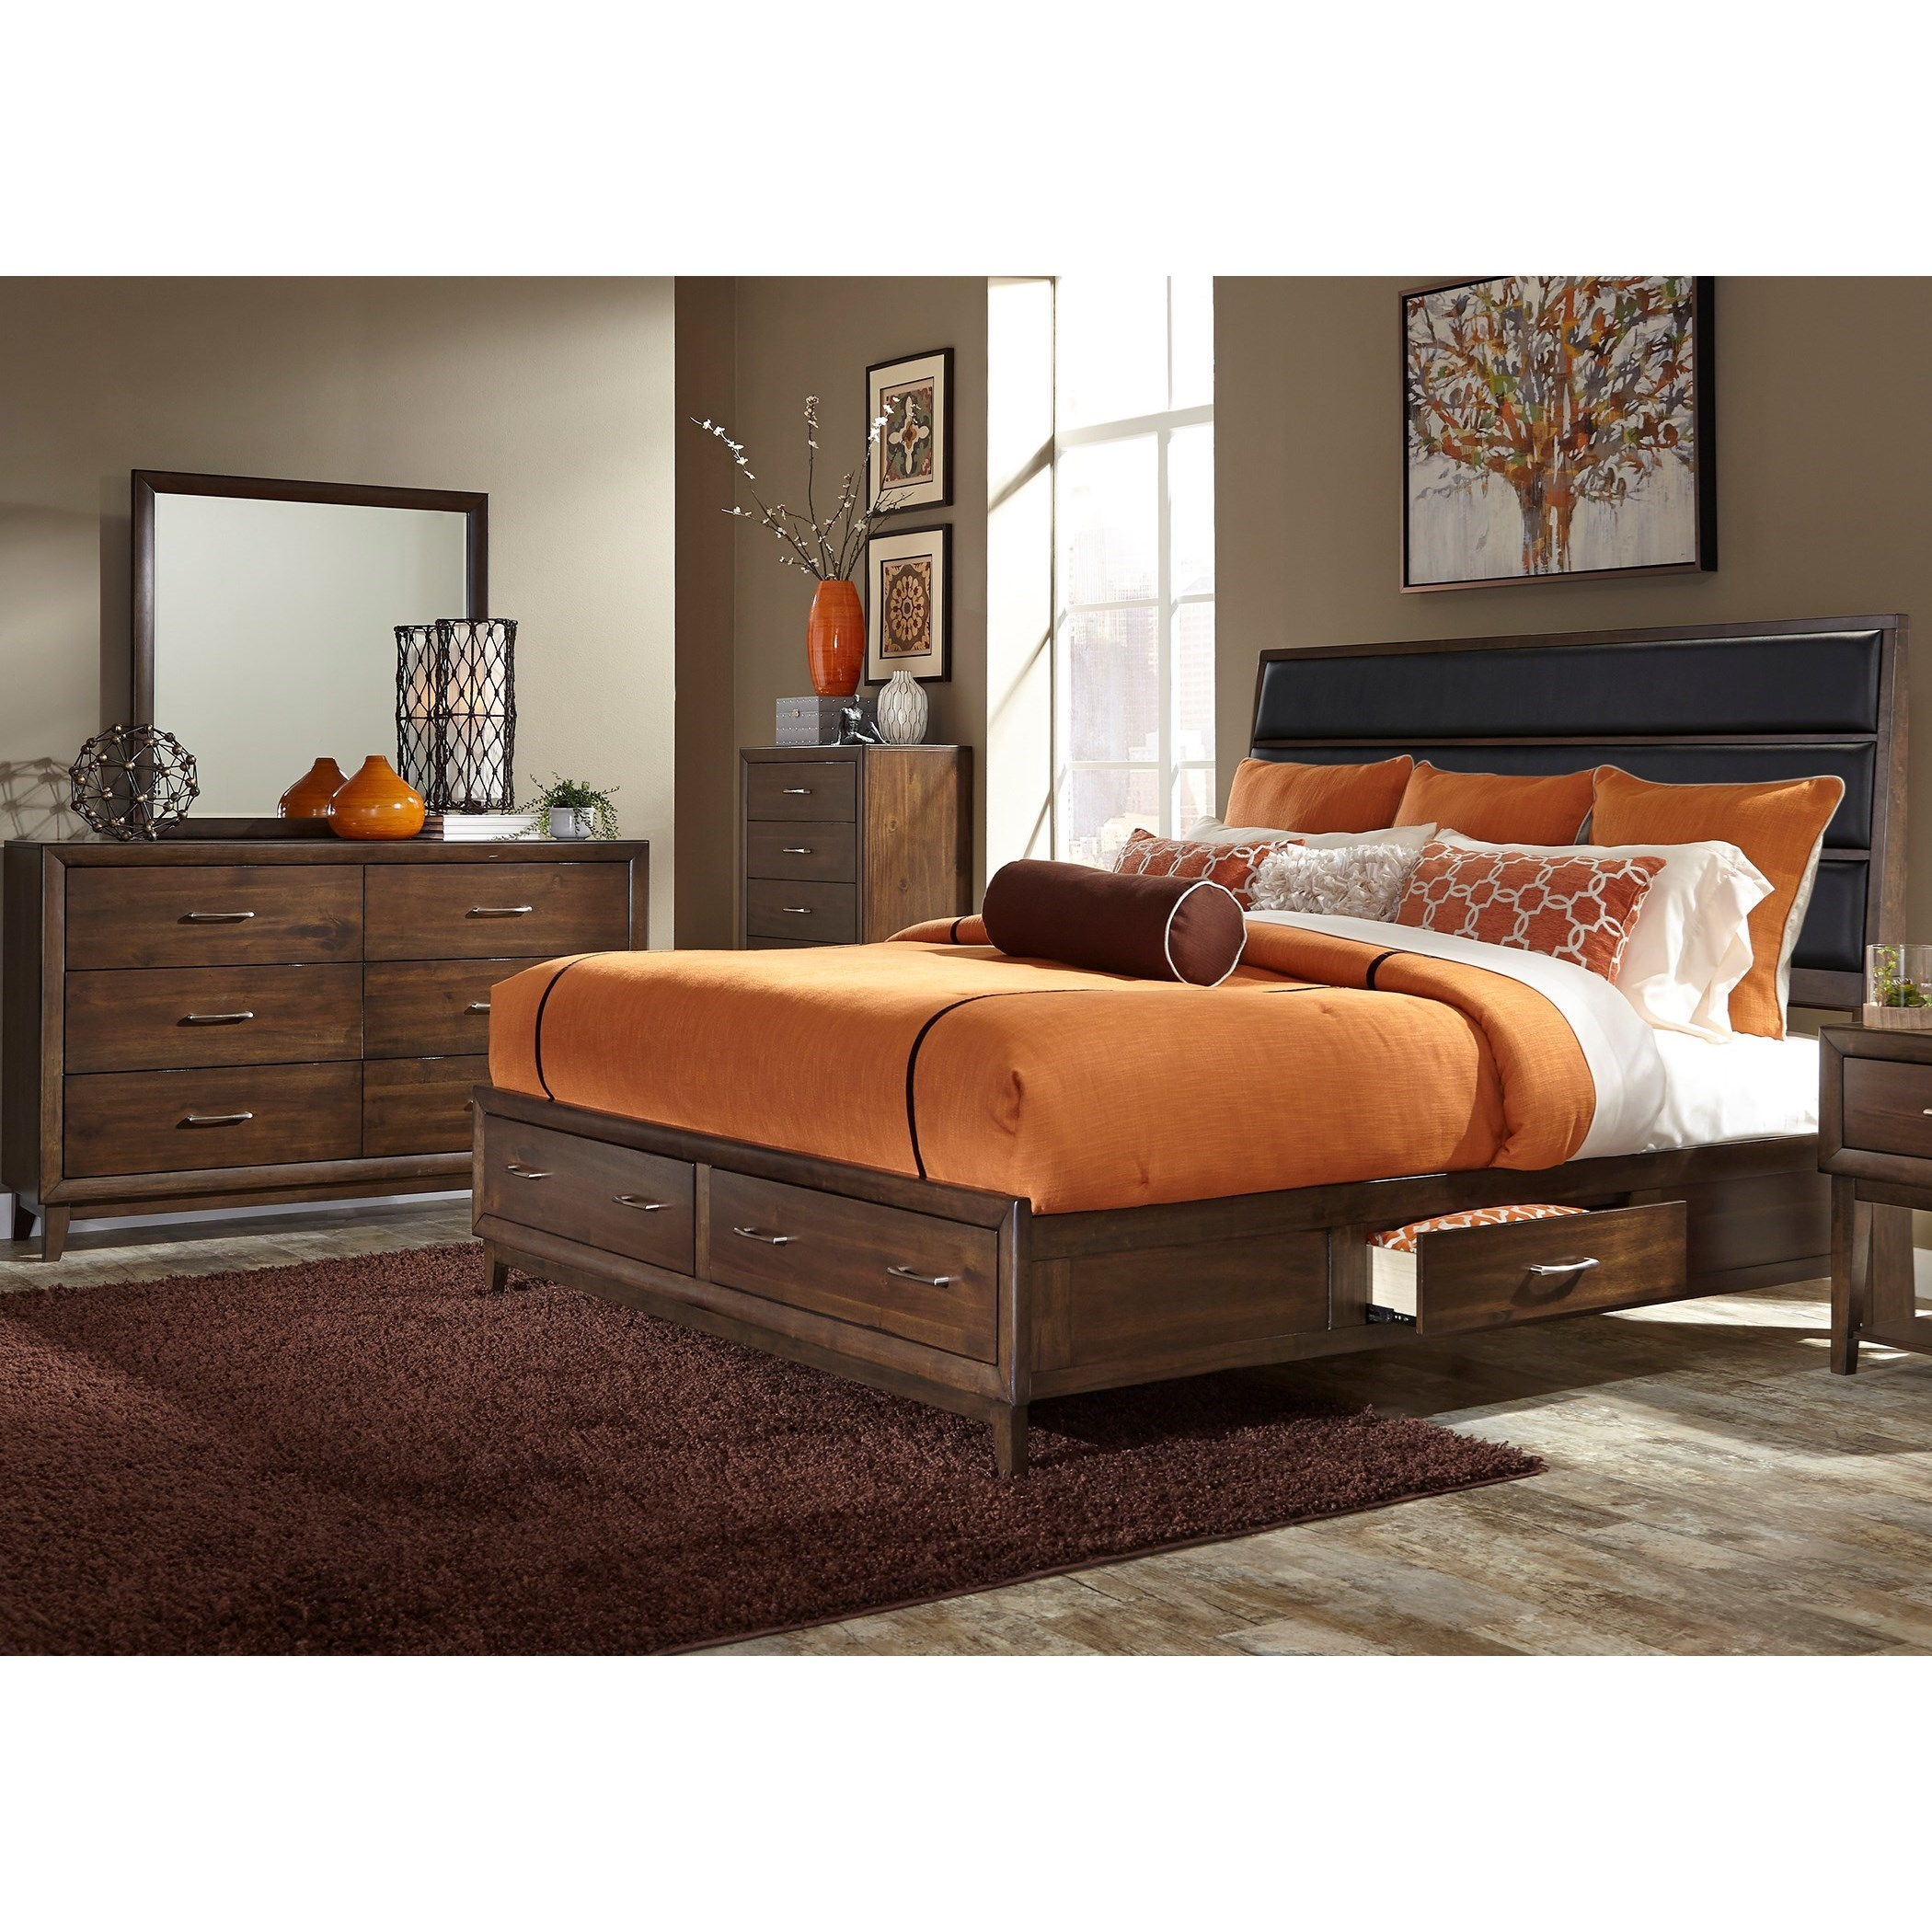 Liberty Furniture Hudson Square Bedroom Queen Bedroom Group - Item Number: 365-BR-QUSDMC